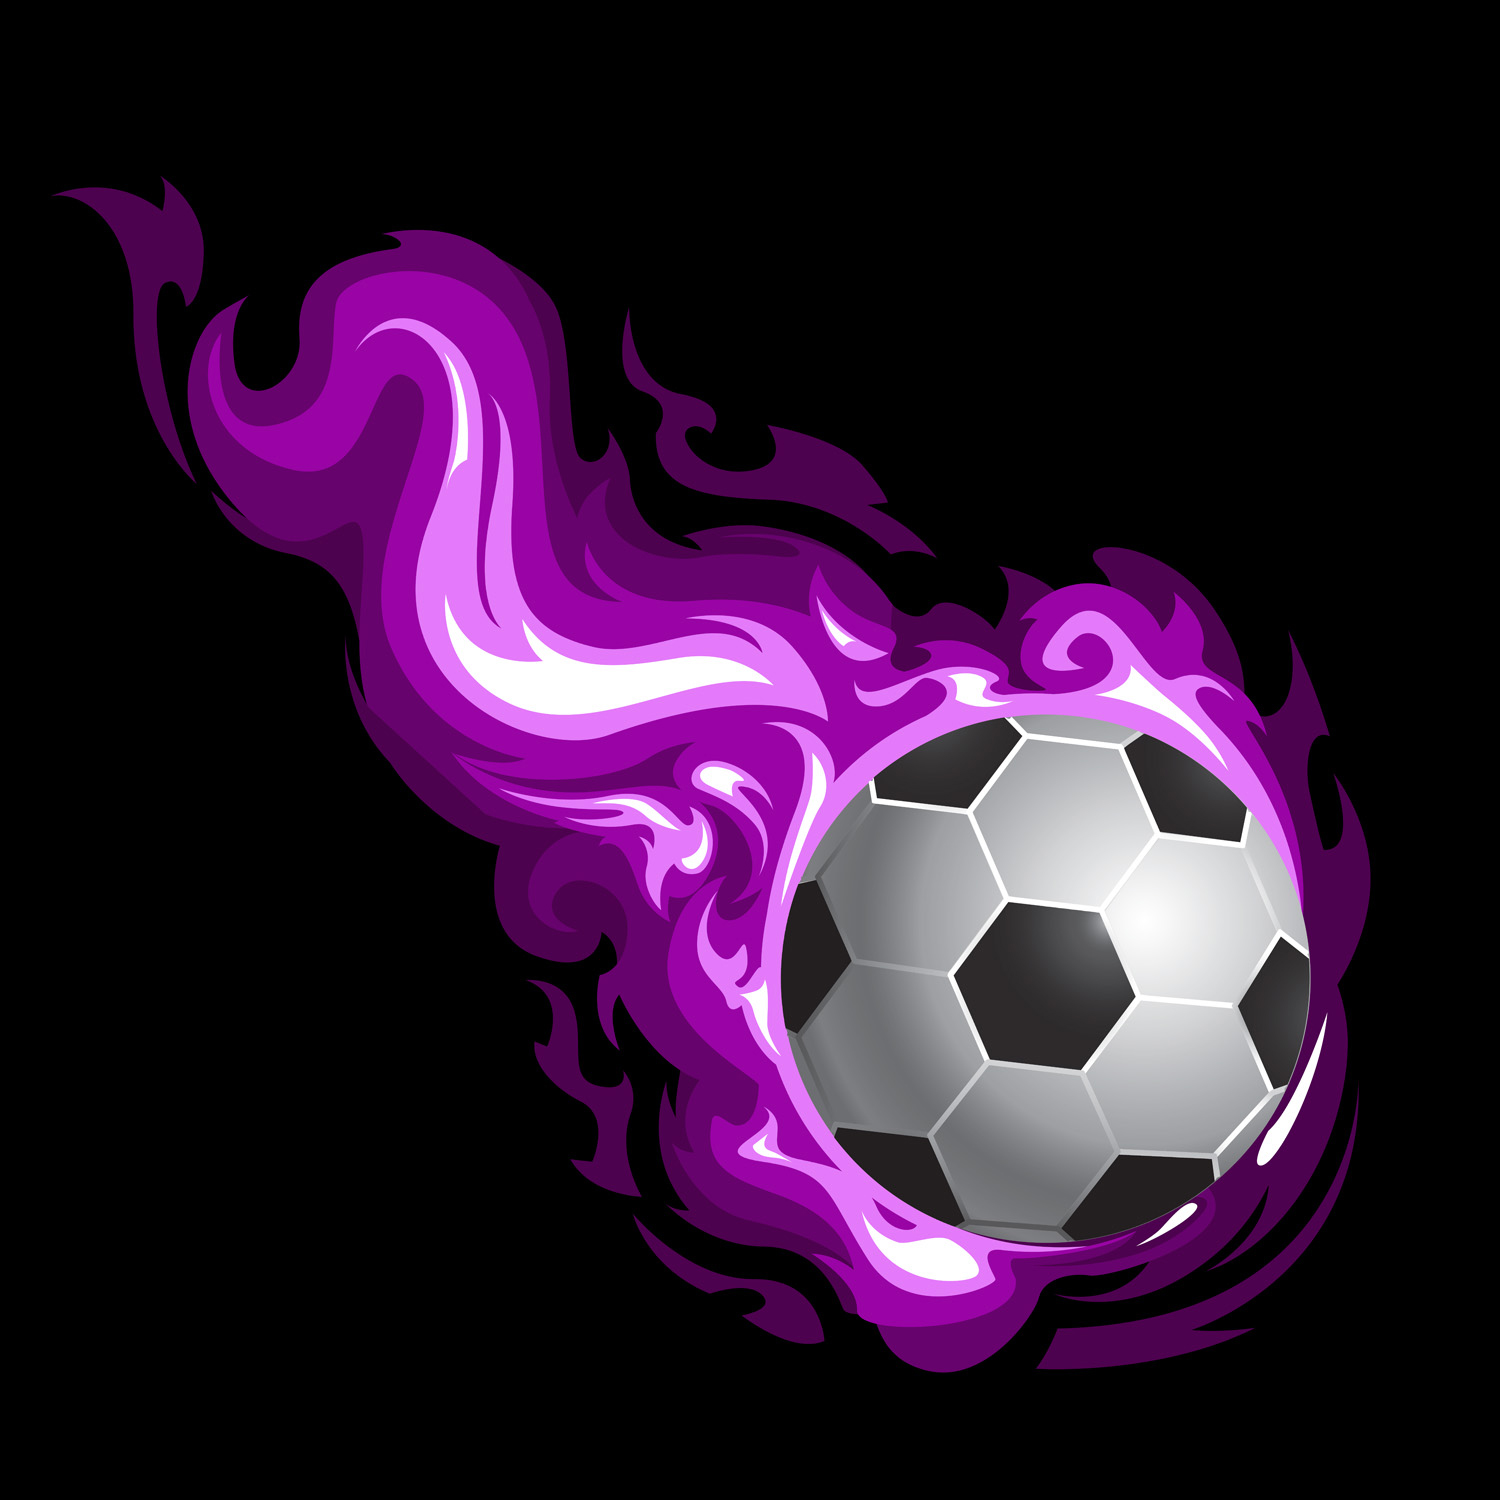 Purple Sports Curtains in Soccer Theme for Girls Room 142